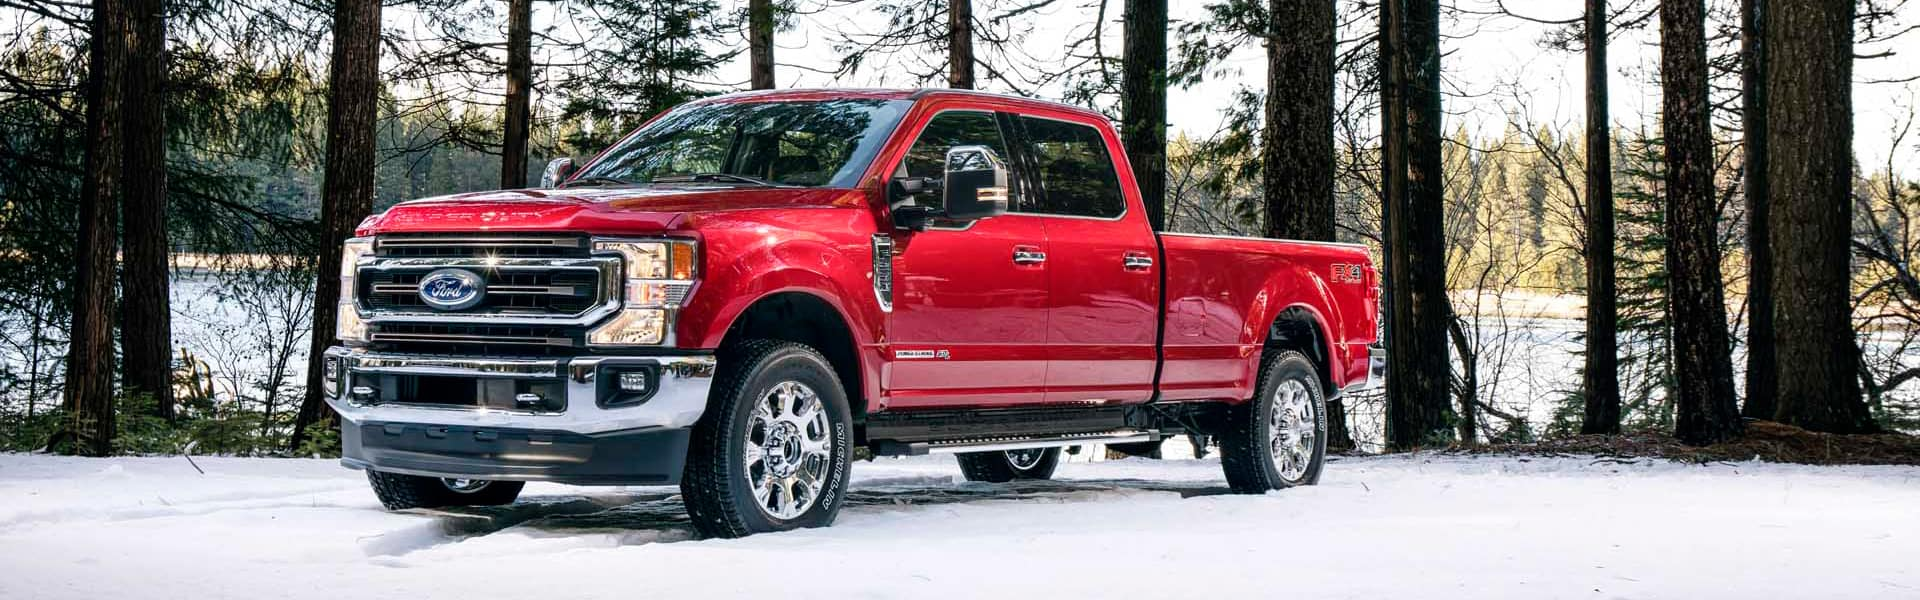 2020 Ford F250 For Sale in Los Angeles